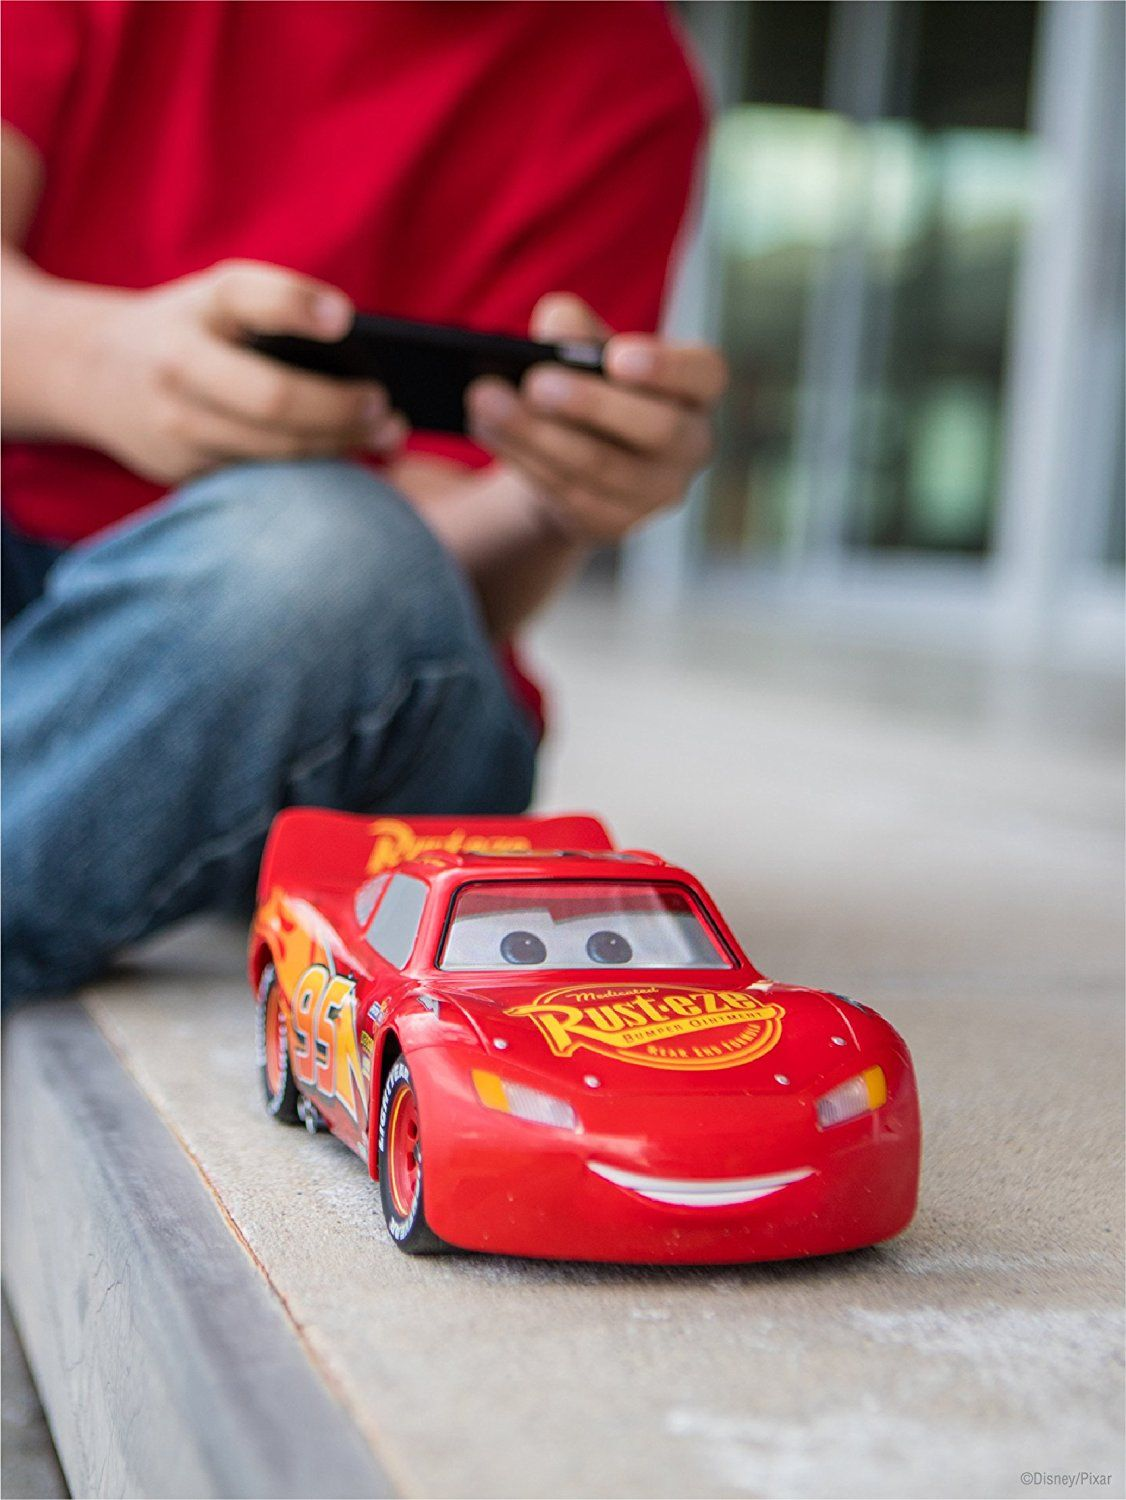 AmazonSmile Ultimate Lightning McQueen by Sphero Cell